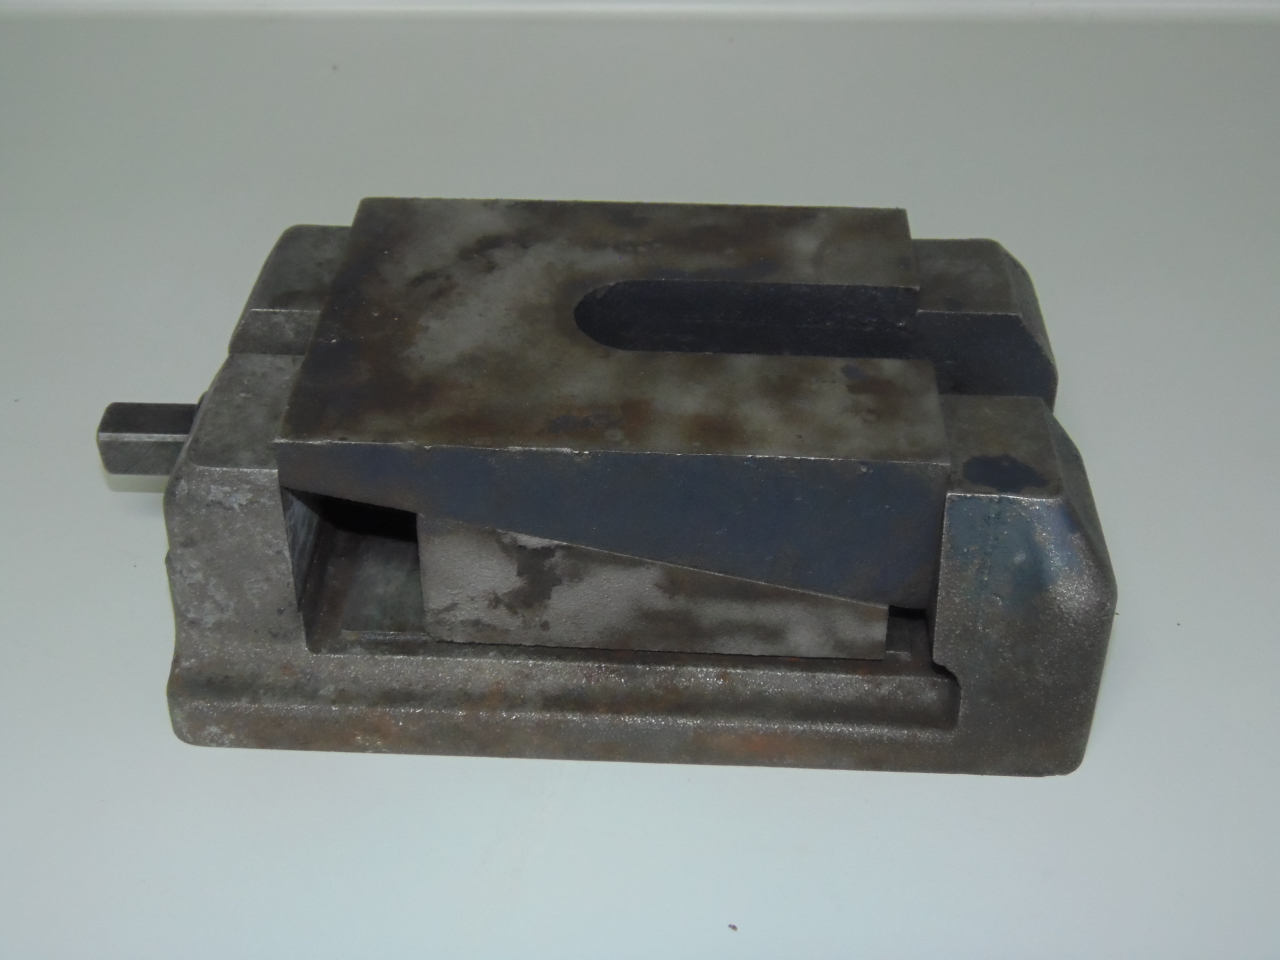 """HEAVY DUTY MACHINE LEVELING BLOCKS, WEDGE TYPE, LEVELING PADS, 10"""" x 7"""" x 3 1/4 to 3 5/8"""" H, 49 AVAILABLE."""